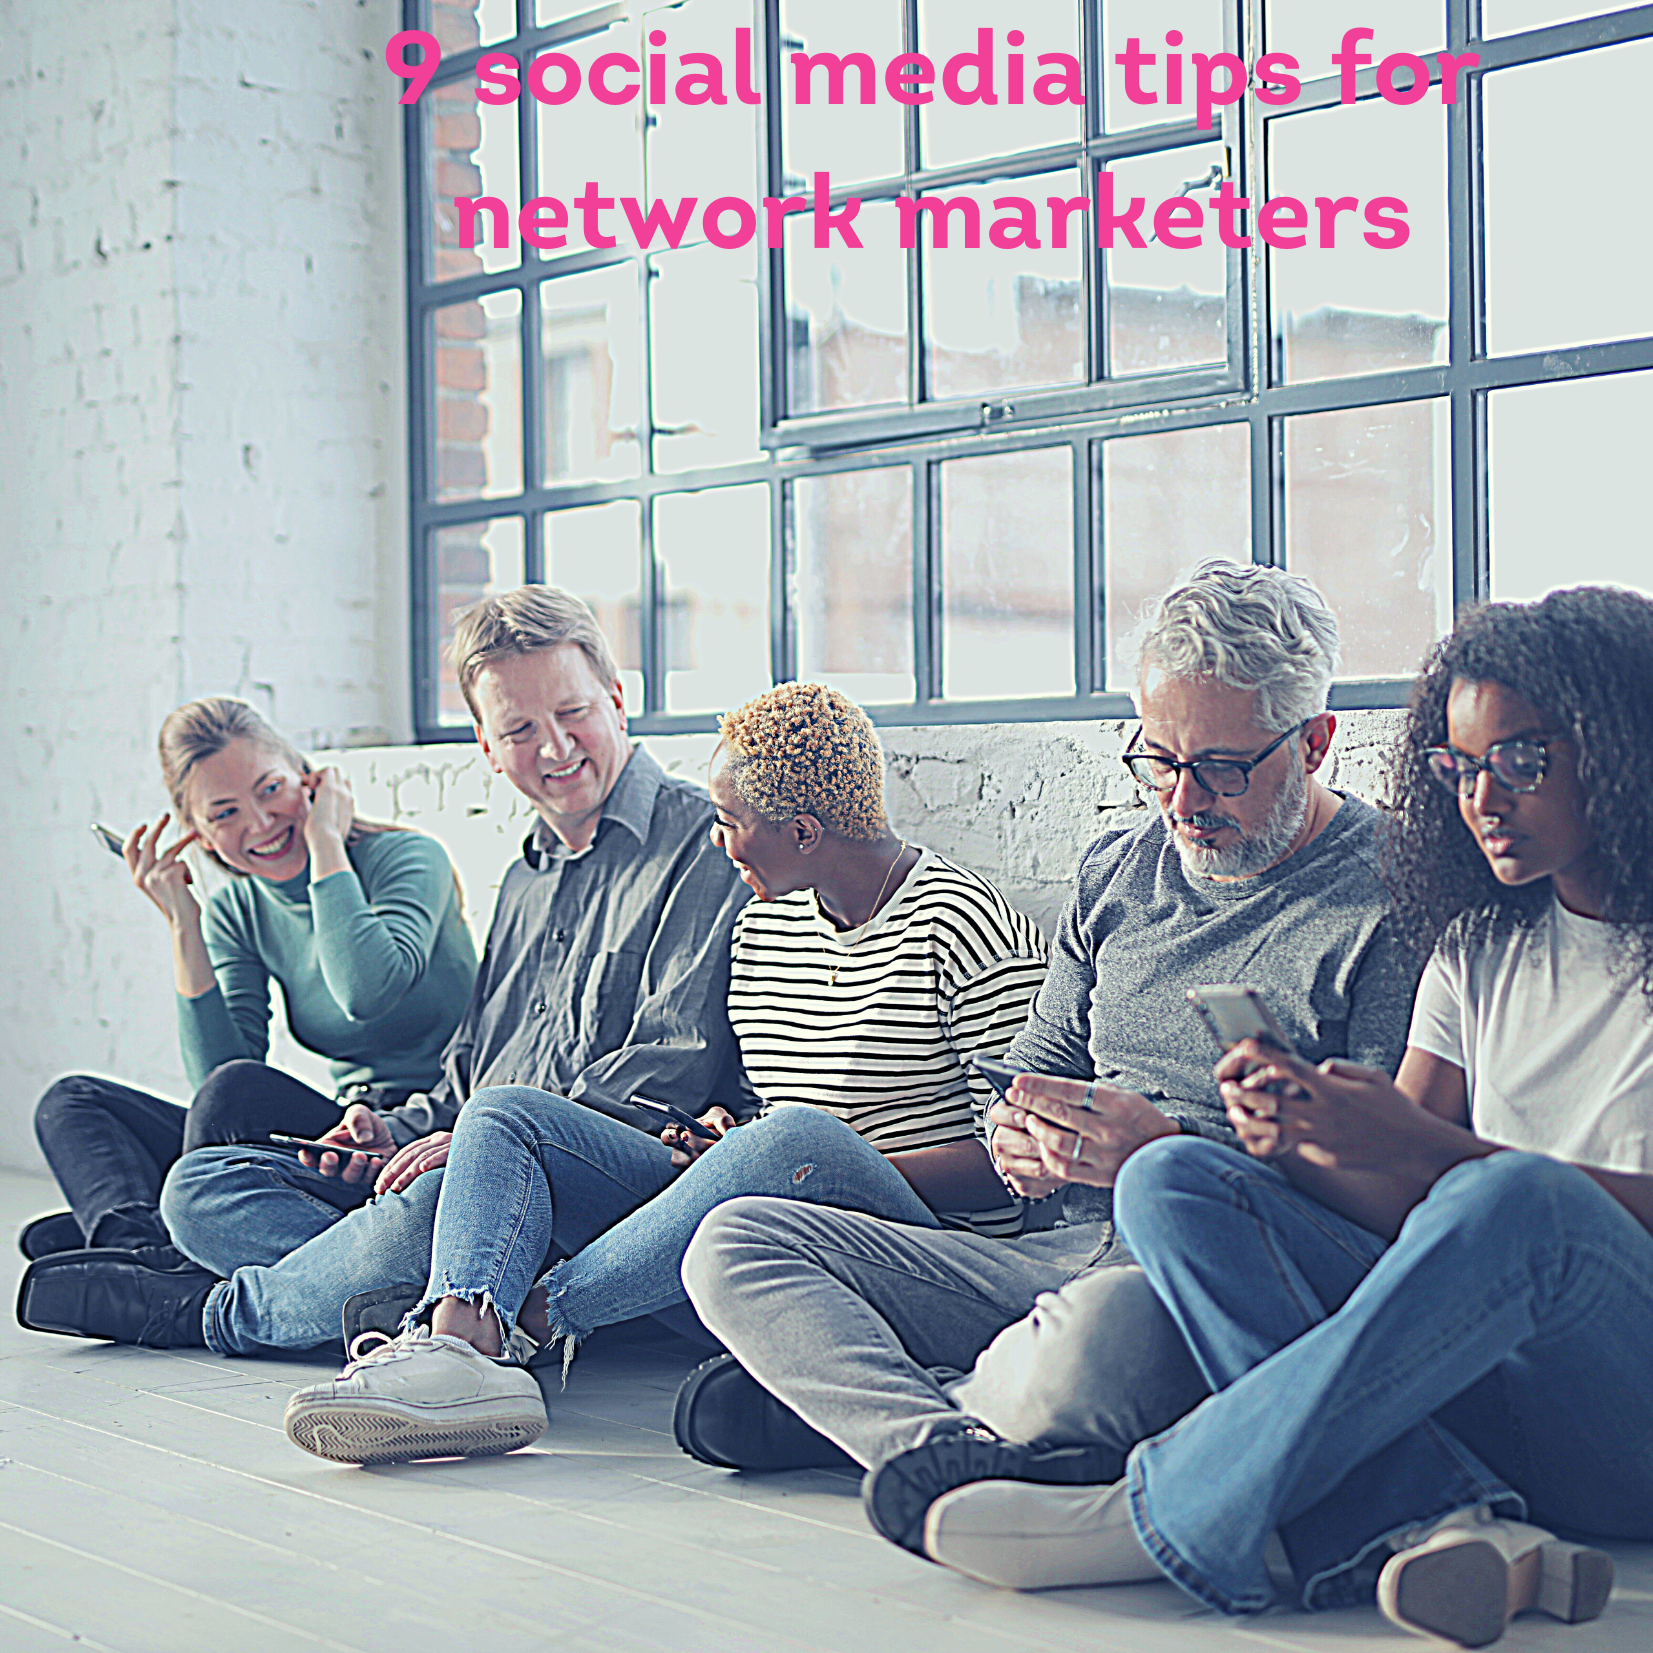 9 social media tips for network marketers